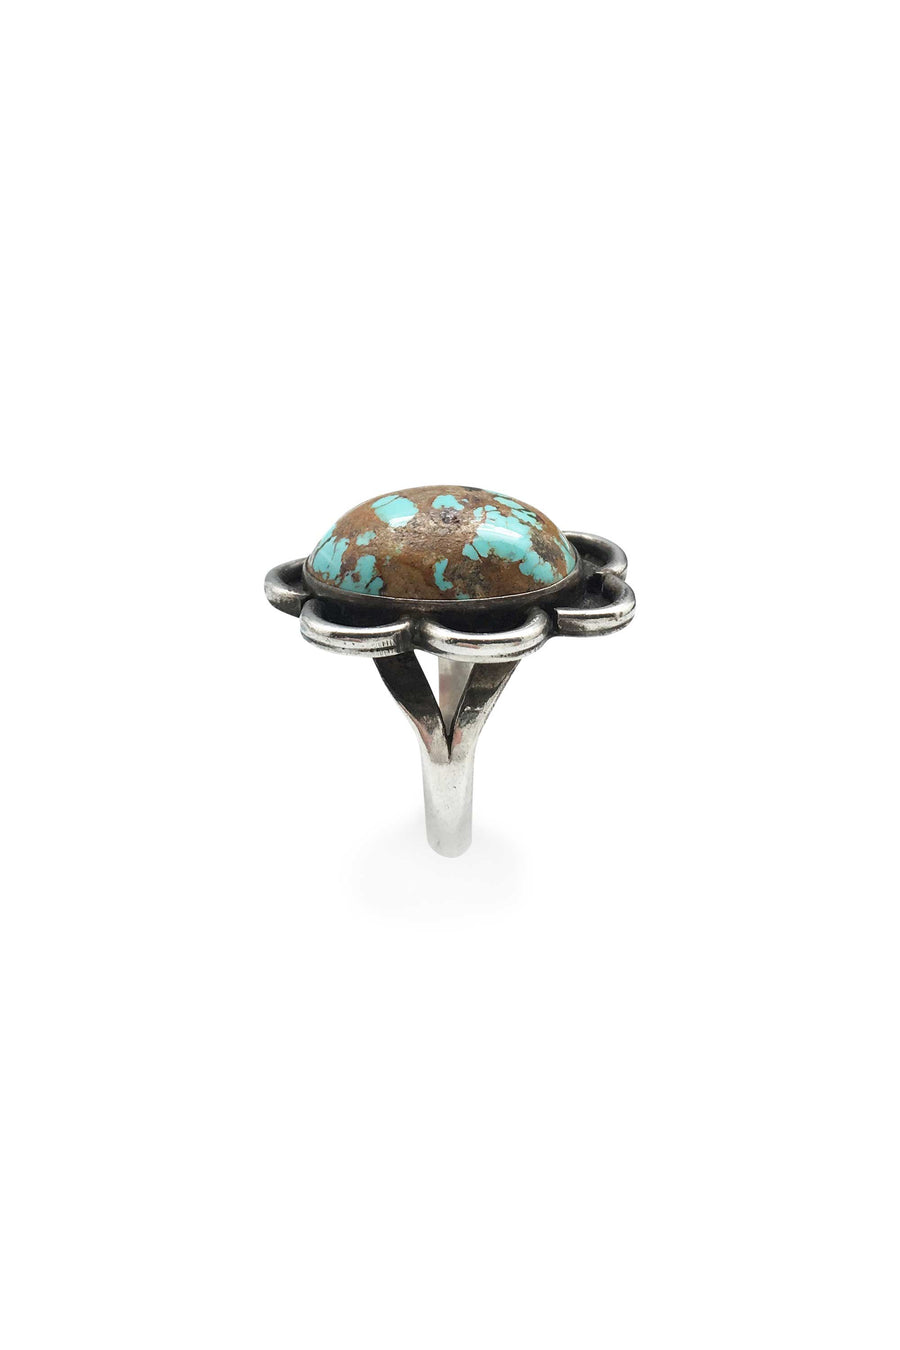 Ring, Turquoise, Vintage, 376